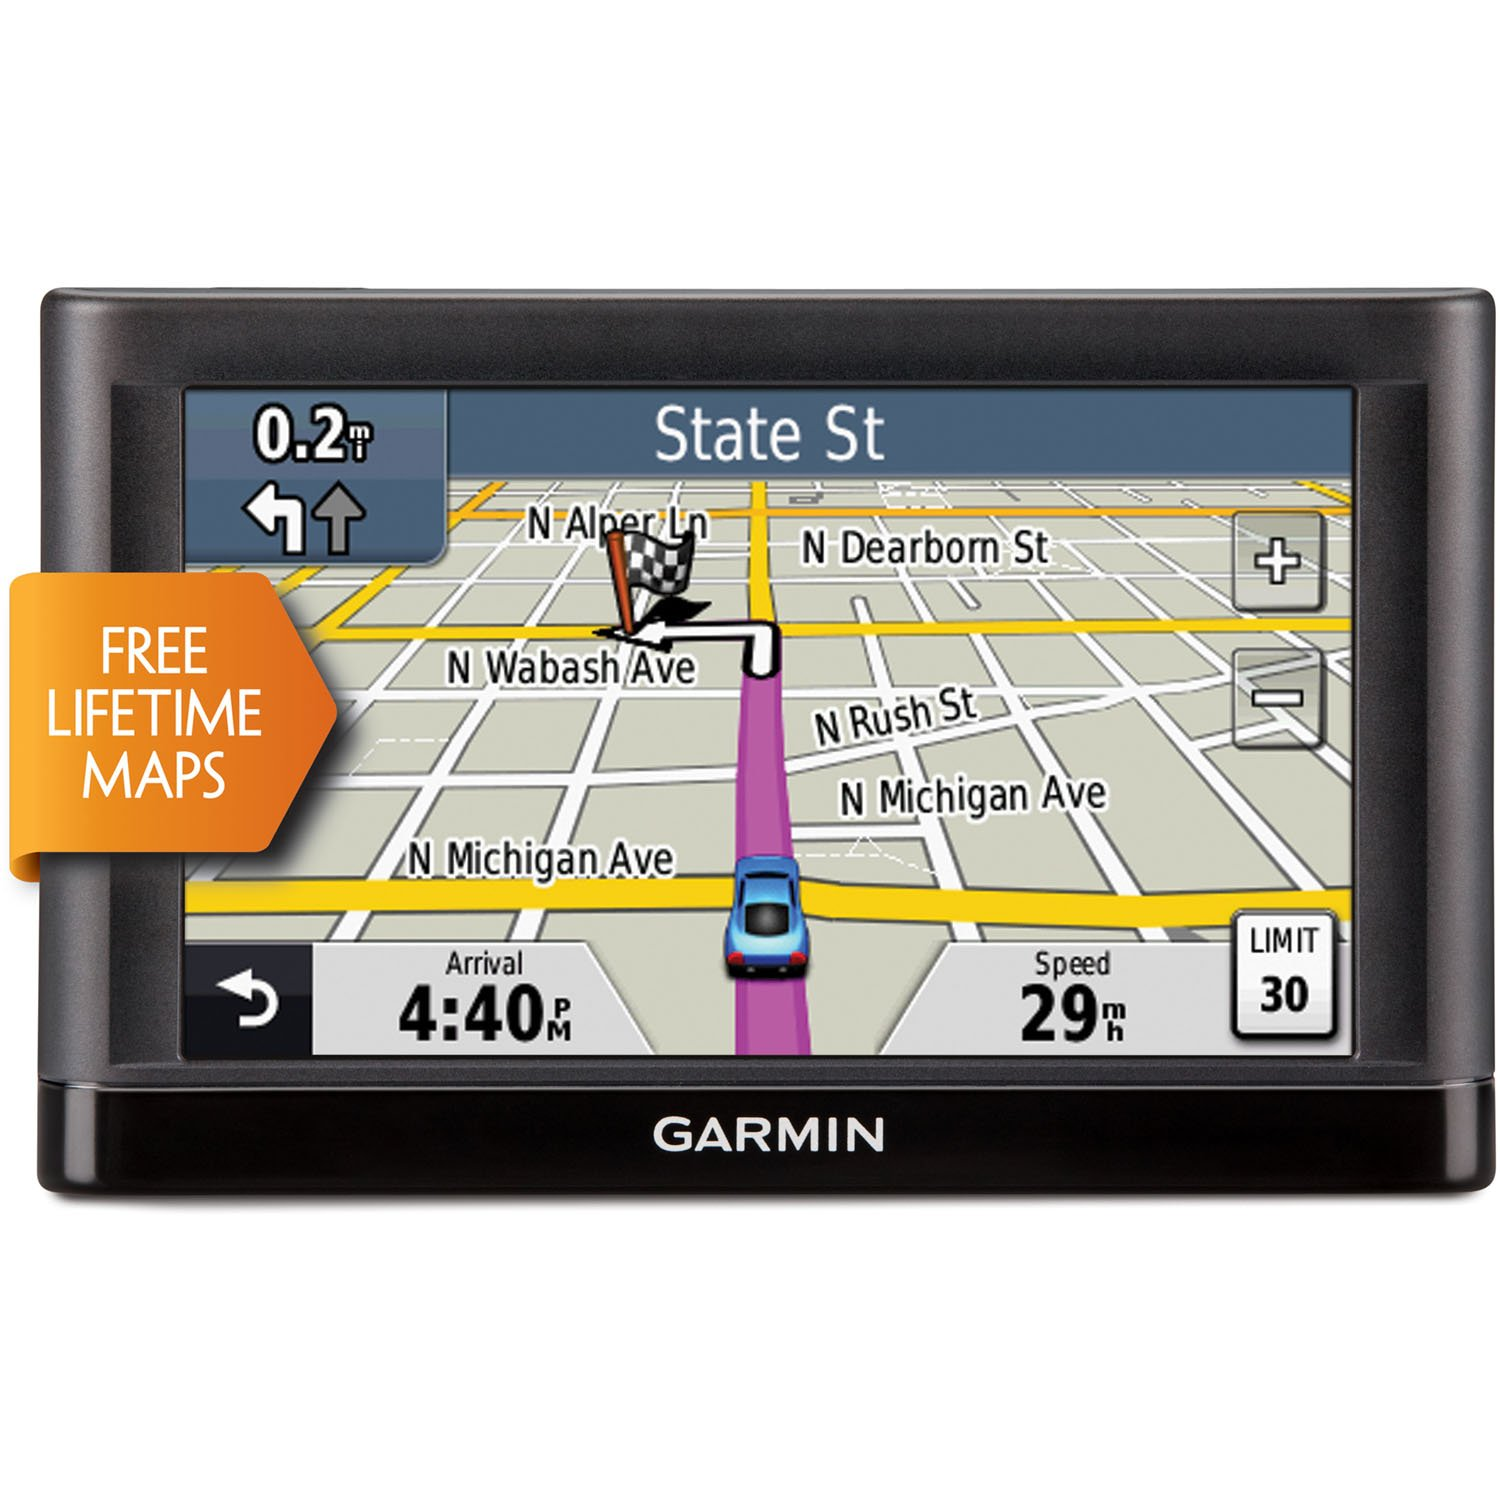 GARMIN NUVI USA MAPS DOWNLOAD LINK